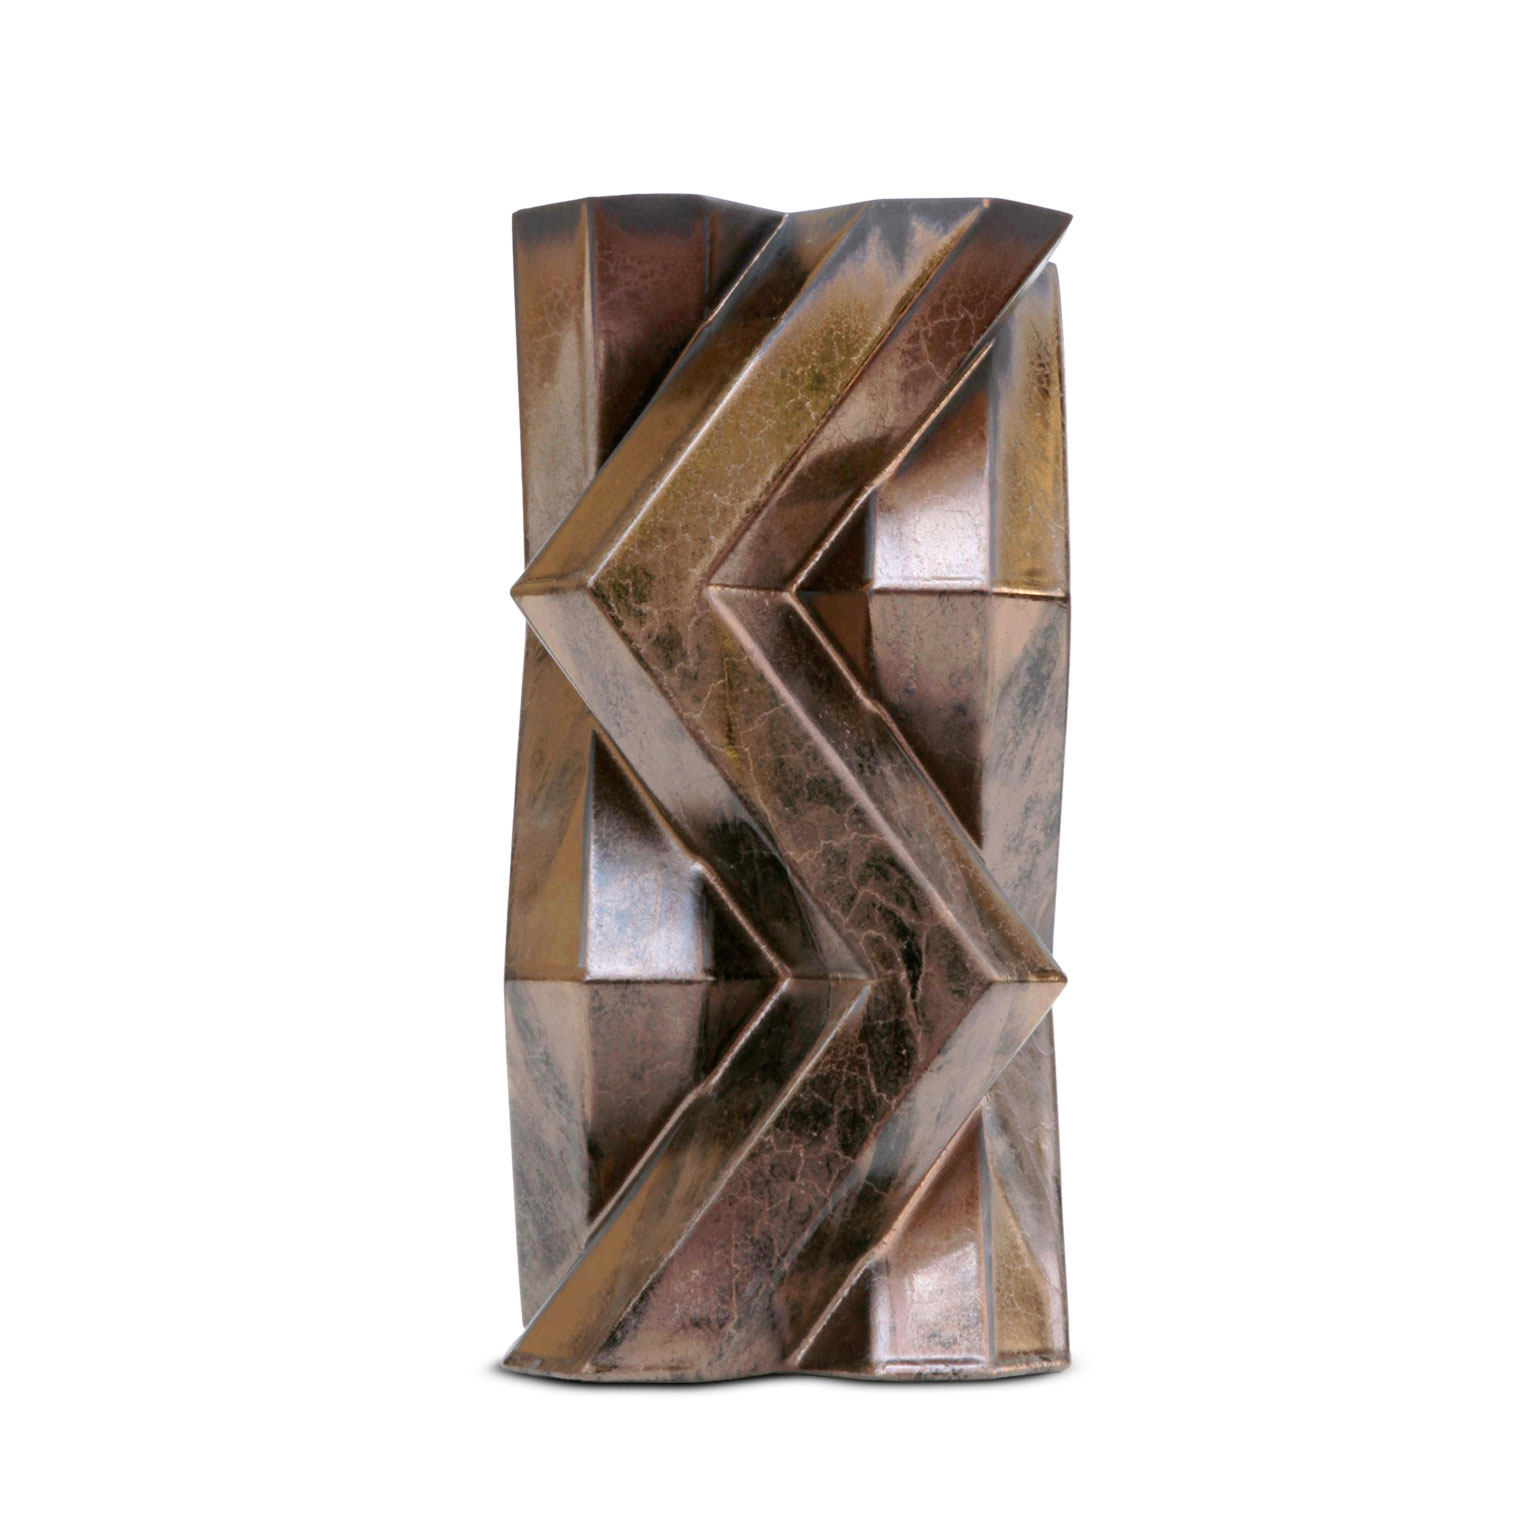 Fortress Tower Vase Bronze - <p>Designer Lara Bohinc explores the marriage of ancient and futuristic form in the new Fortress Vase range, which has created a more complex geometric and modern structure from the original inspiration of the octagonal towers at the Diocletian Palace in Croatia. The resulting hexagonal blocks interlock and embrace to allow the play of light and shade on the many surfaces and angles. There are four Fortress shapes: the larger Column and Castle (45cm height), the Pillar (30cm height) and the Tower vase (37cm height). These are hand made from ceramic in a small Italian artisanal workshop and come in three finishes: dark gold, bronze and speckled white.</p>    Matter of Stuff